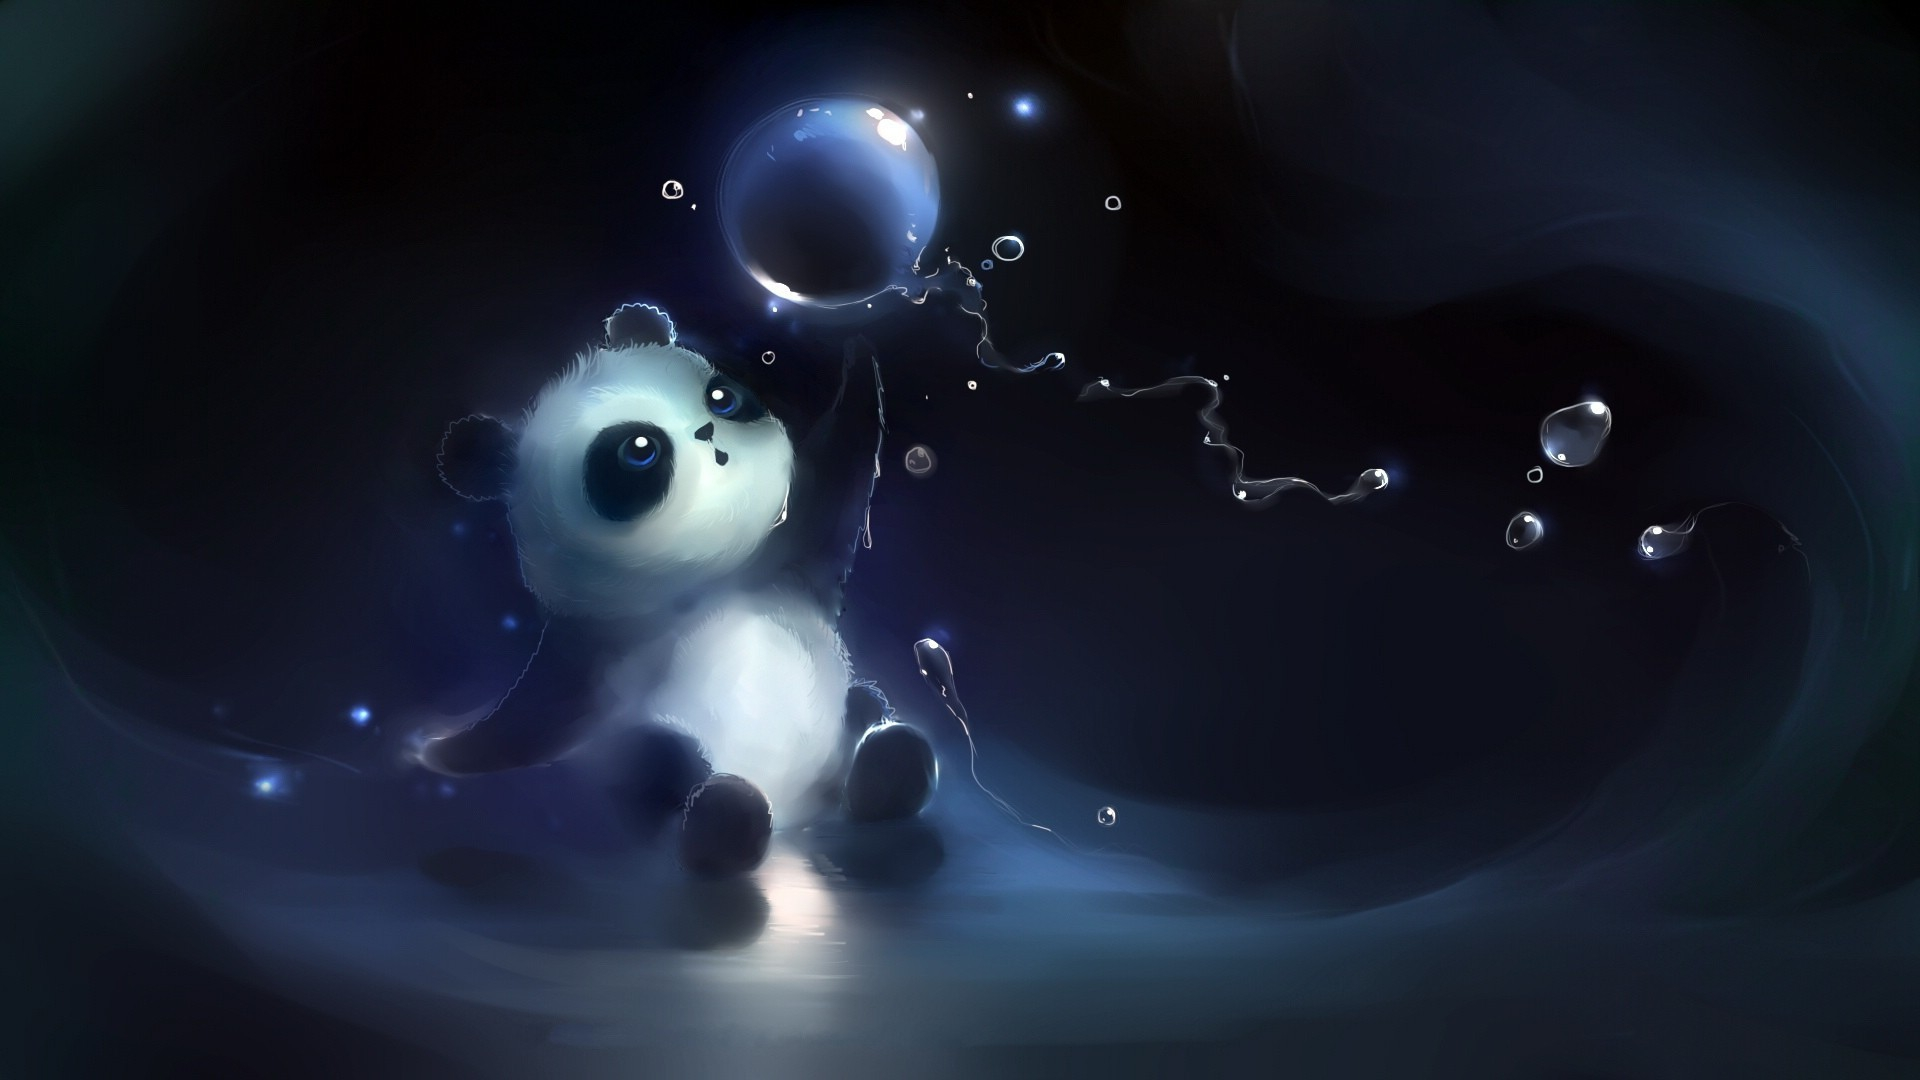 Cute Panda Wallpaper Posted By Christopher Anderson